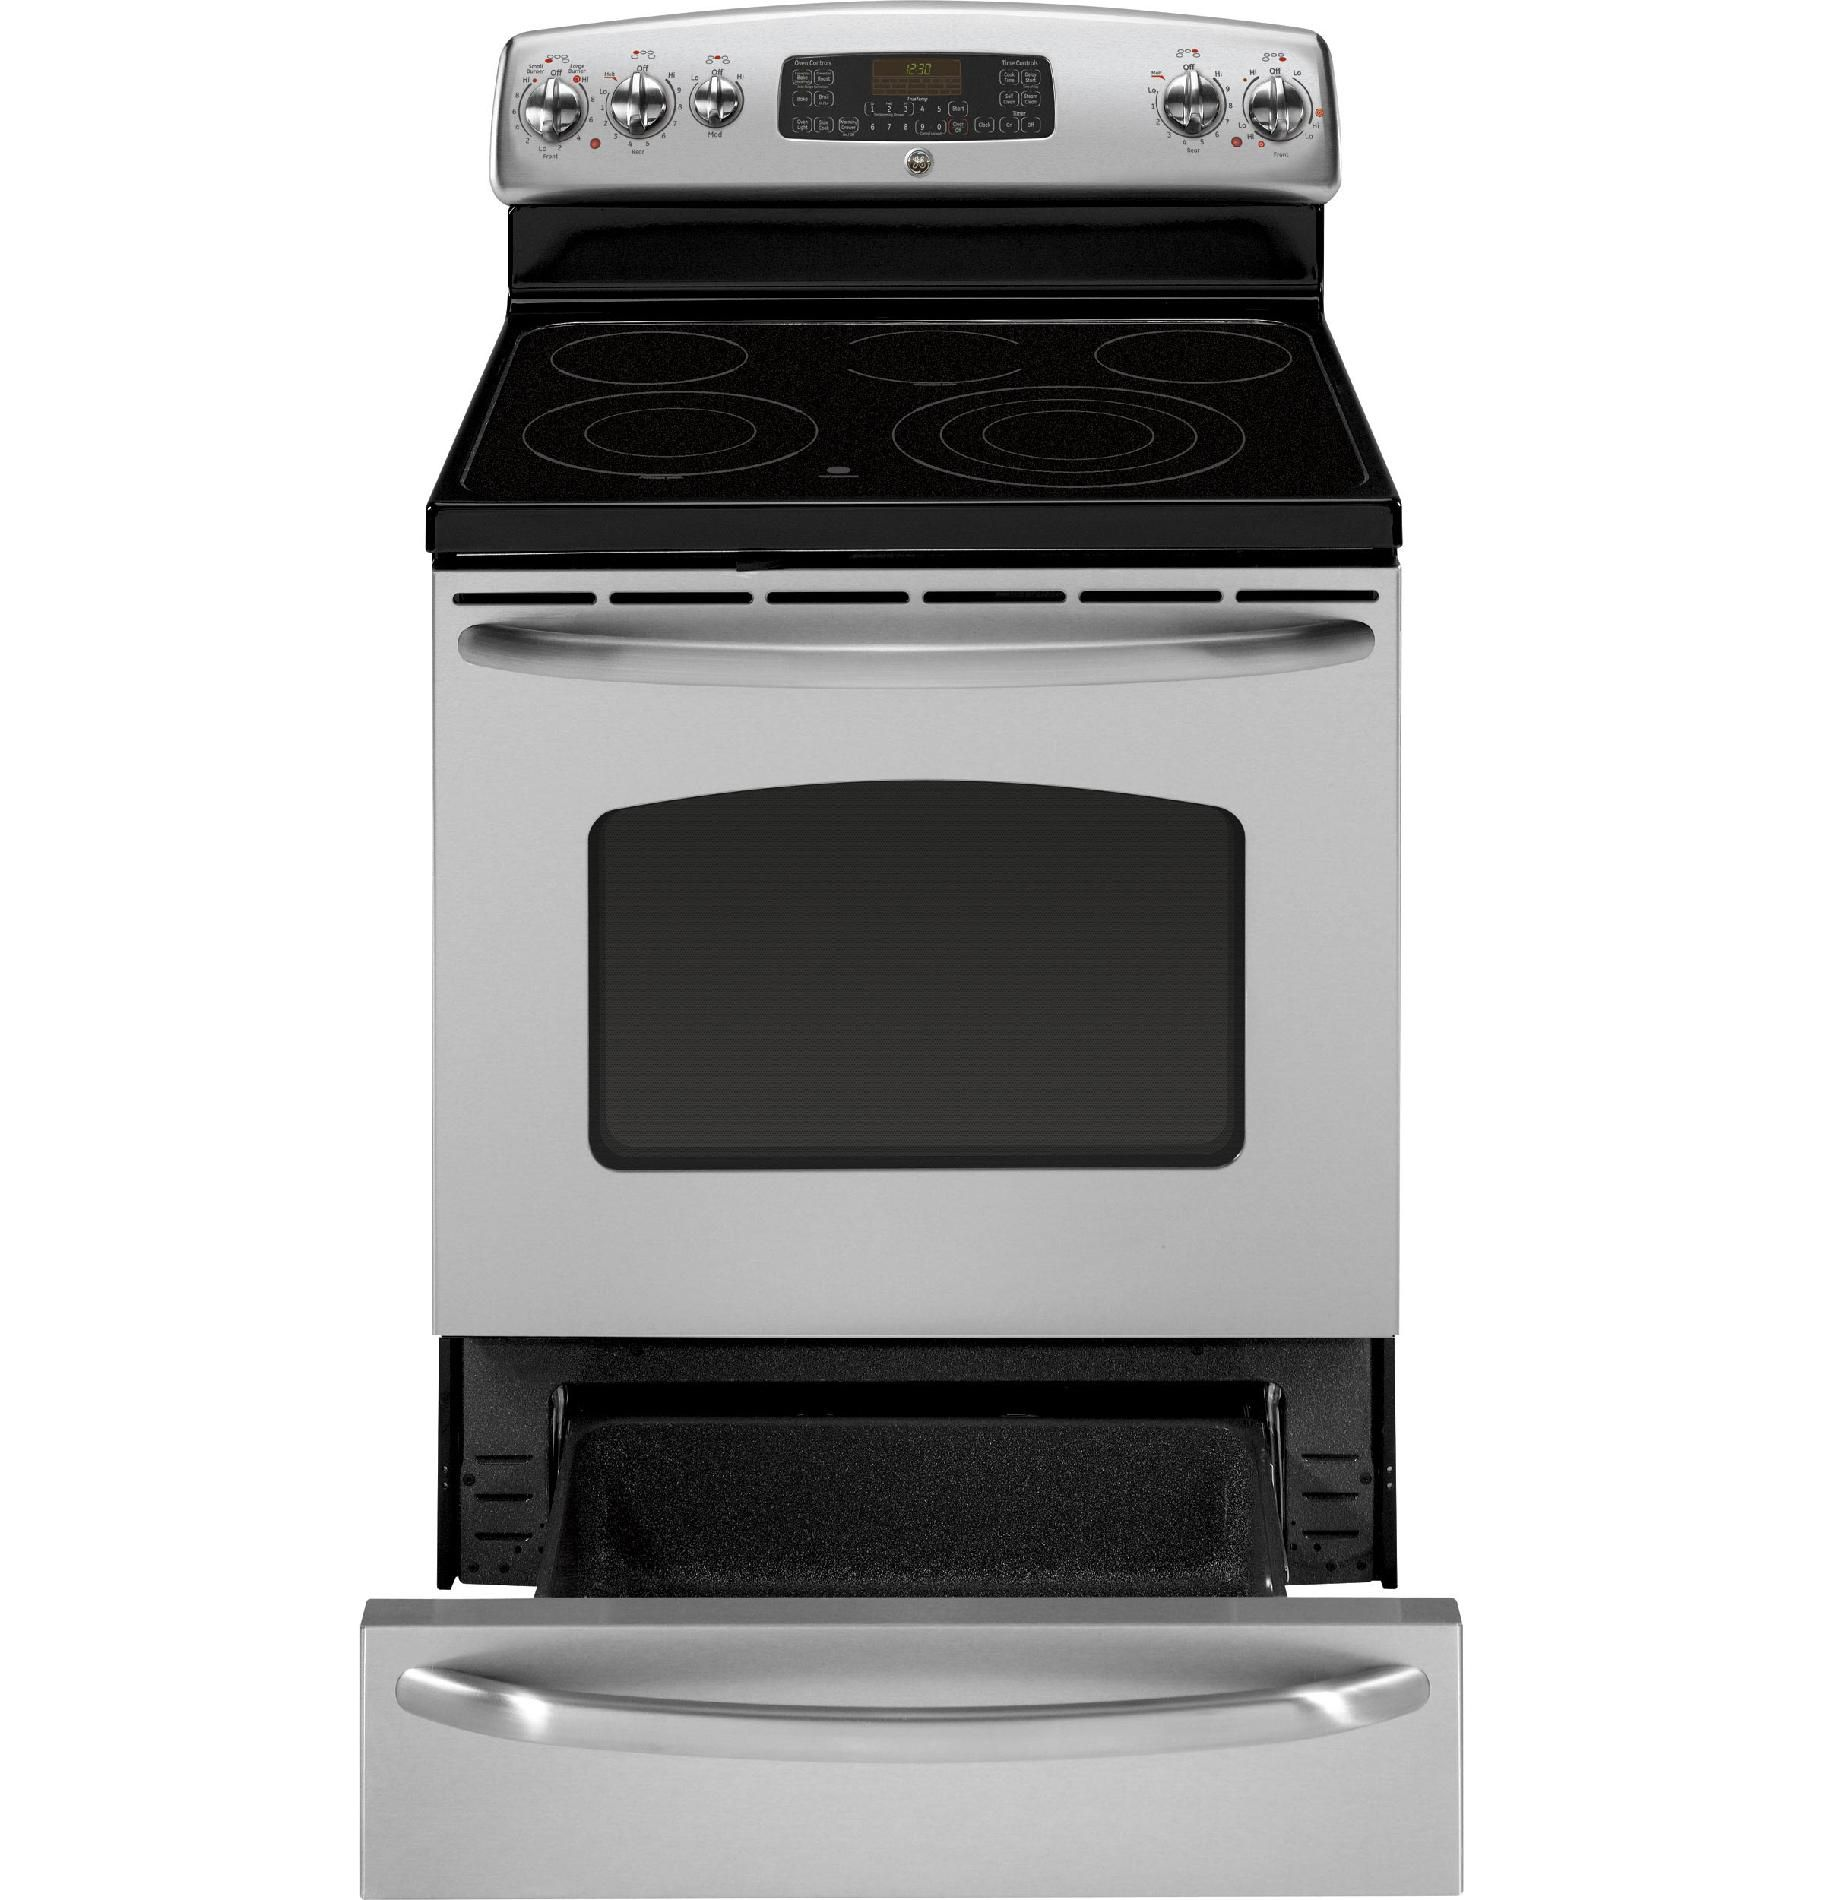 GE 5.3 cu. ft. Convection Range w/ Warming Drawer - Stainless Steel